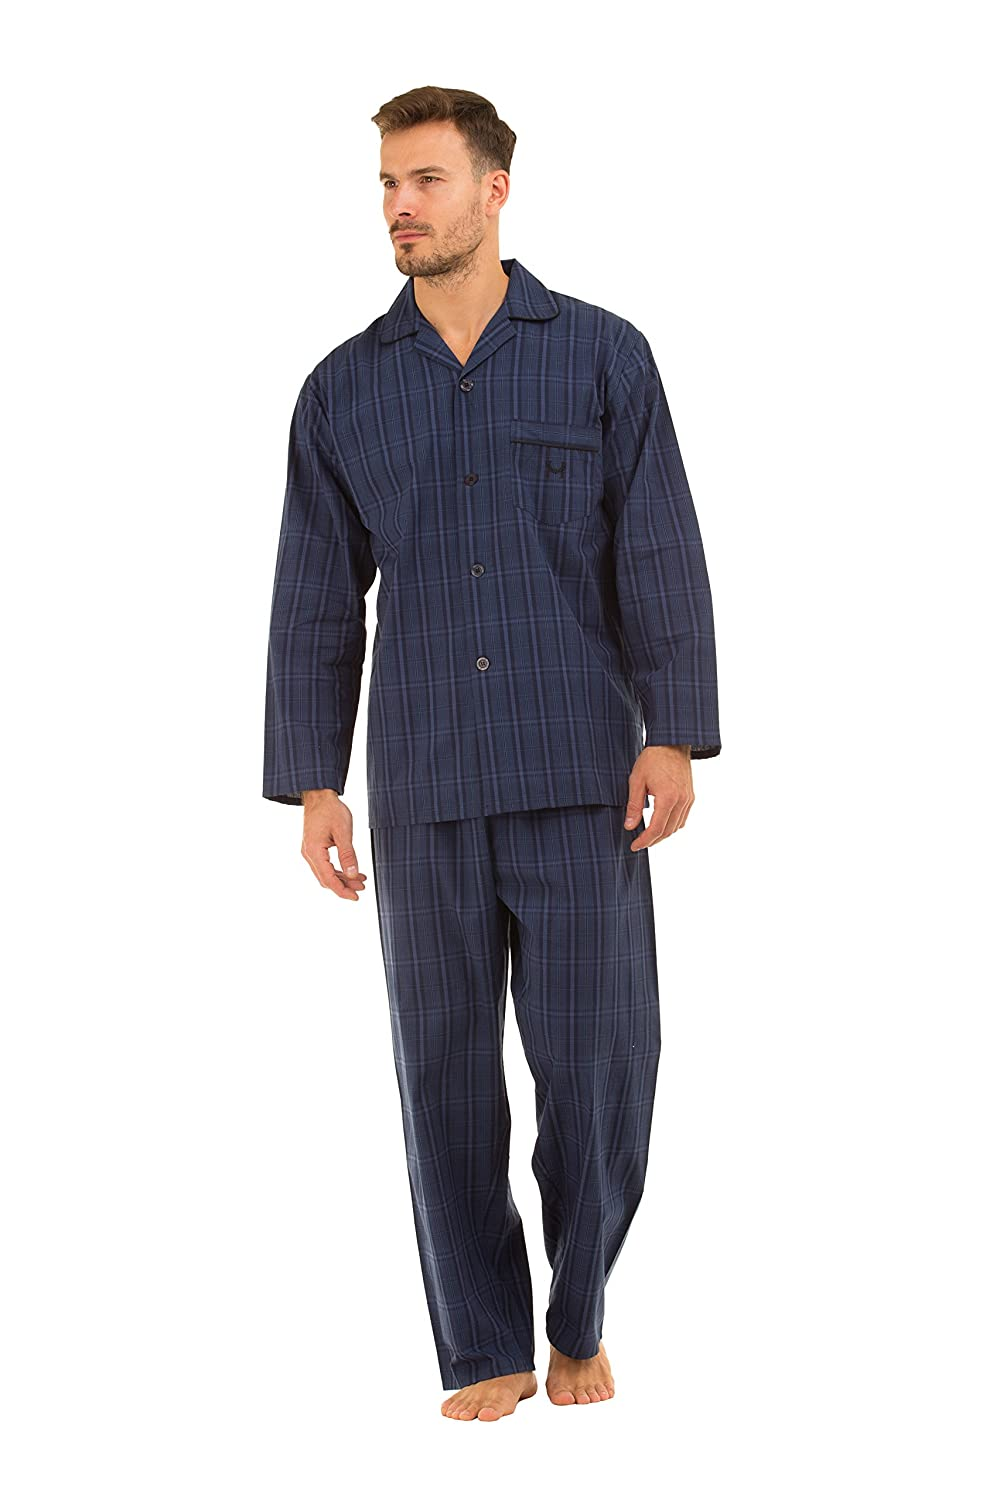 Haigman Mens Poplin 100% Cotton 7491 Pyjamas